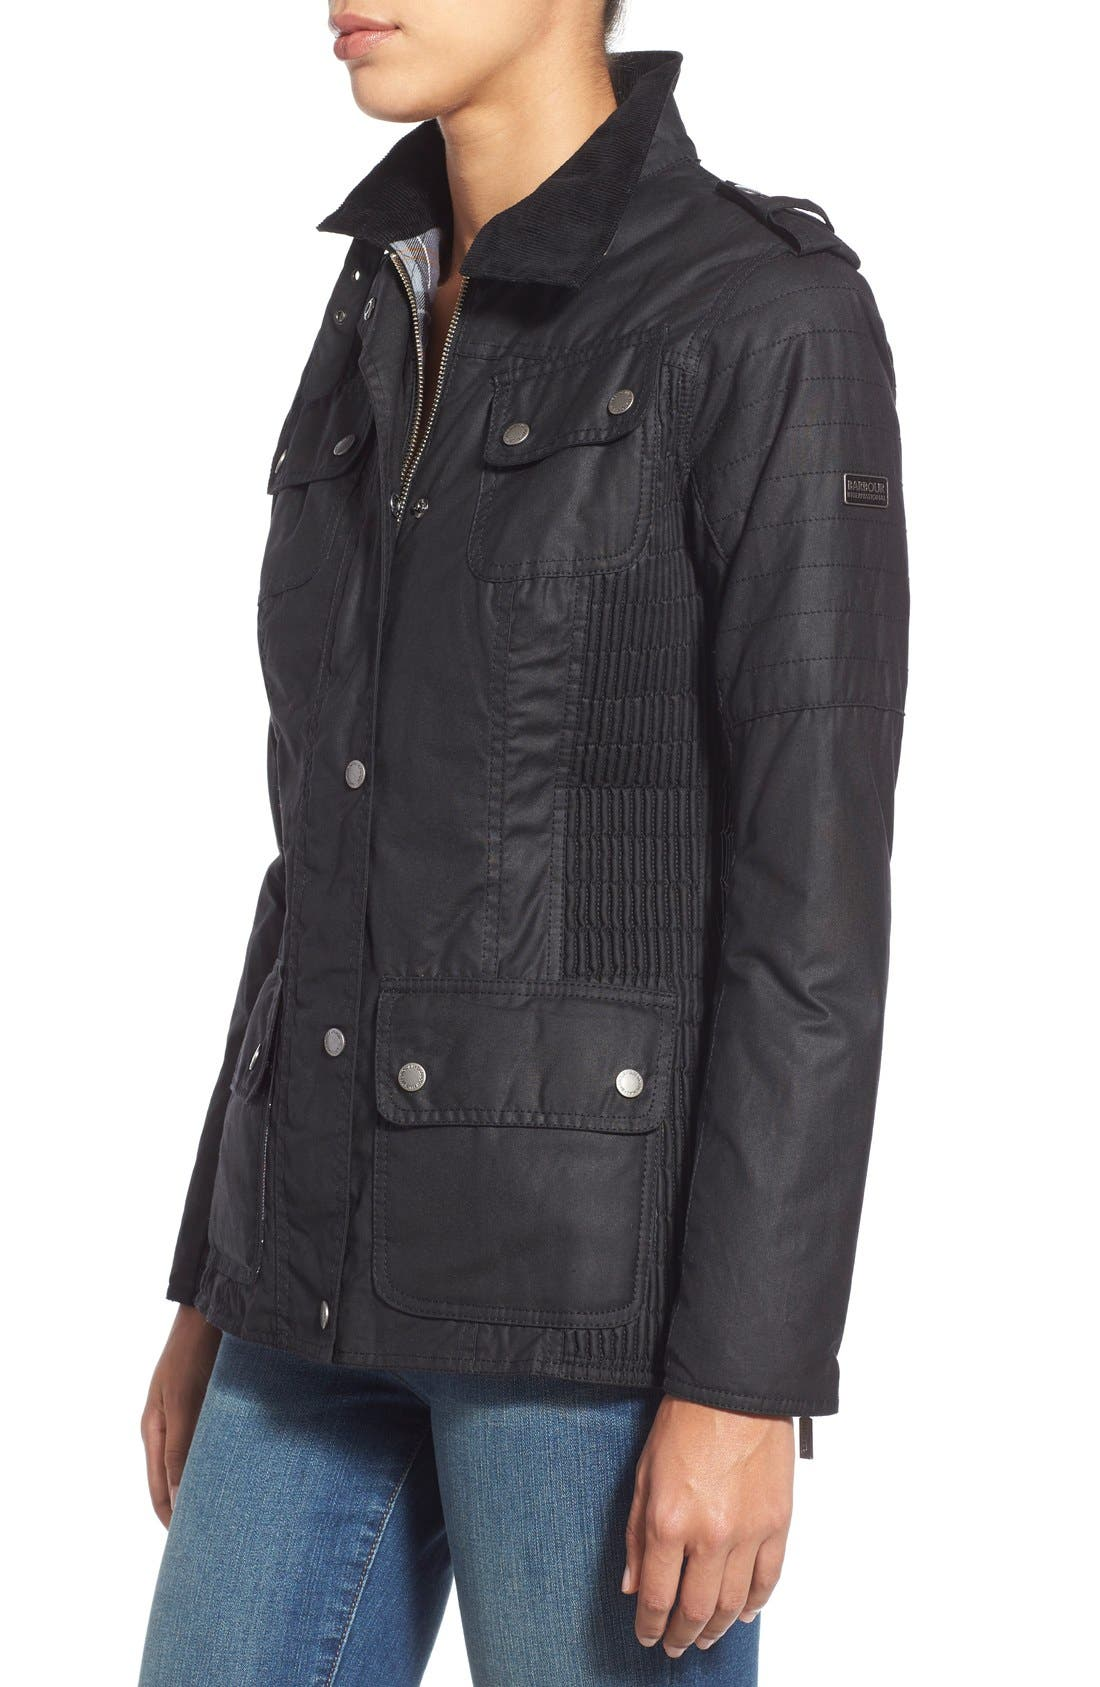 Barbour fireblade jacket